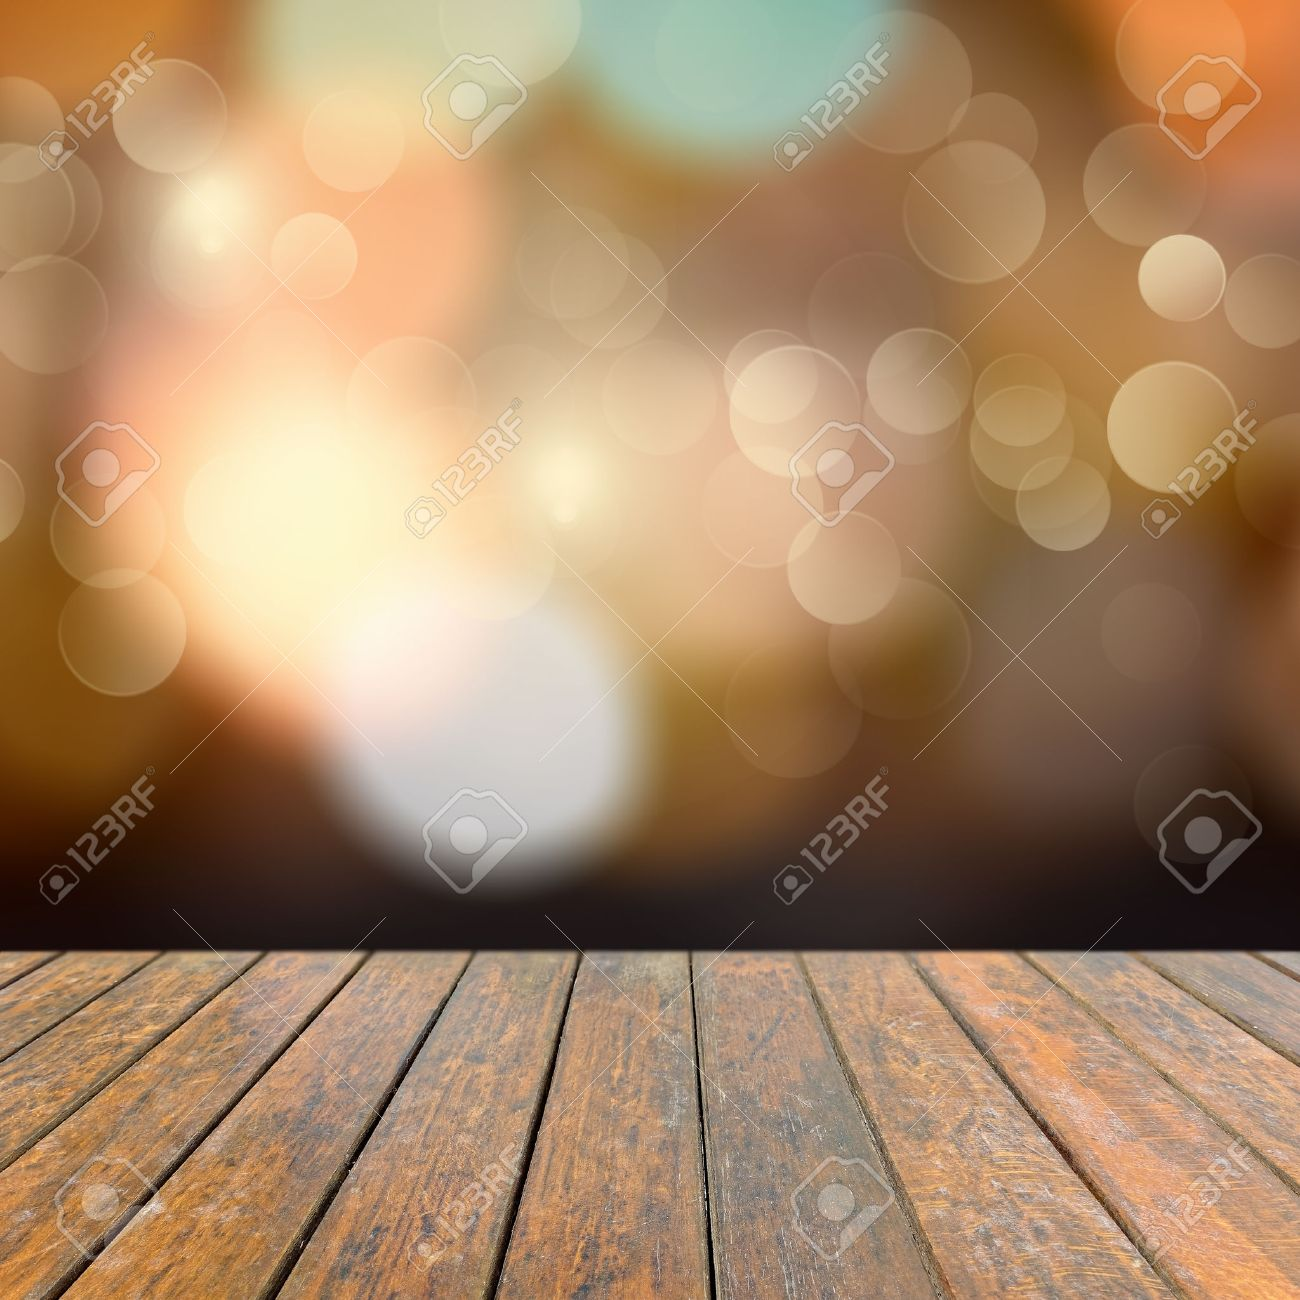 Plain wood table with hipster brick wall background stock photo - Background Brown Old Wooden Deck Table With A Sparkling Bokeh Of Party Lights In The